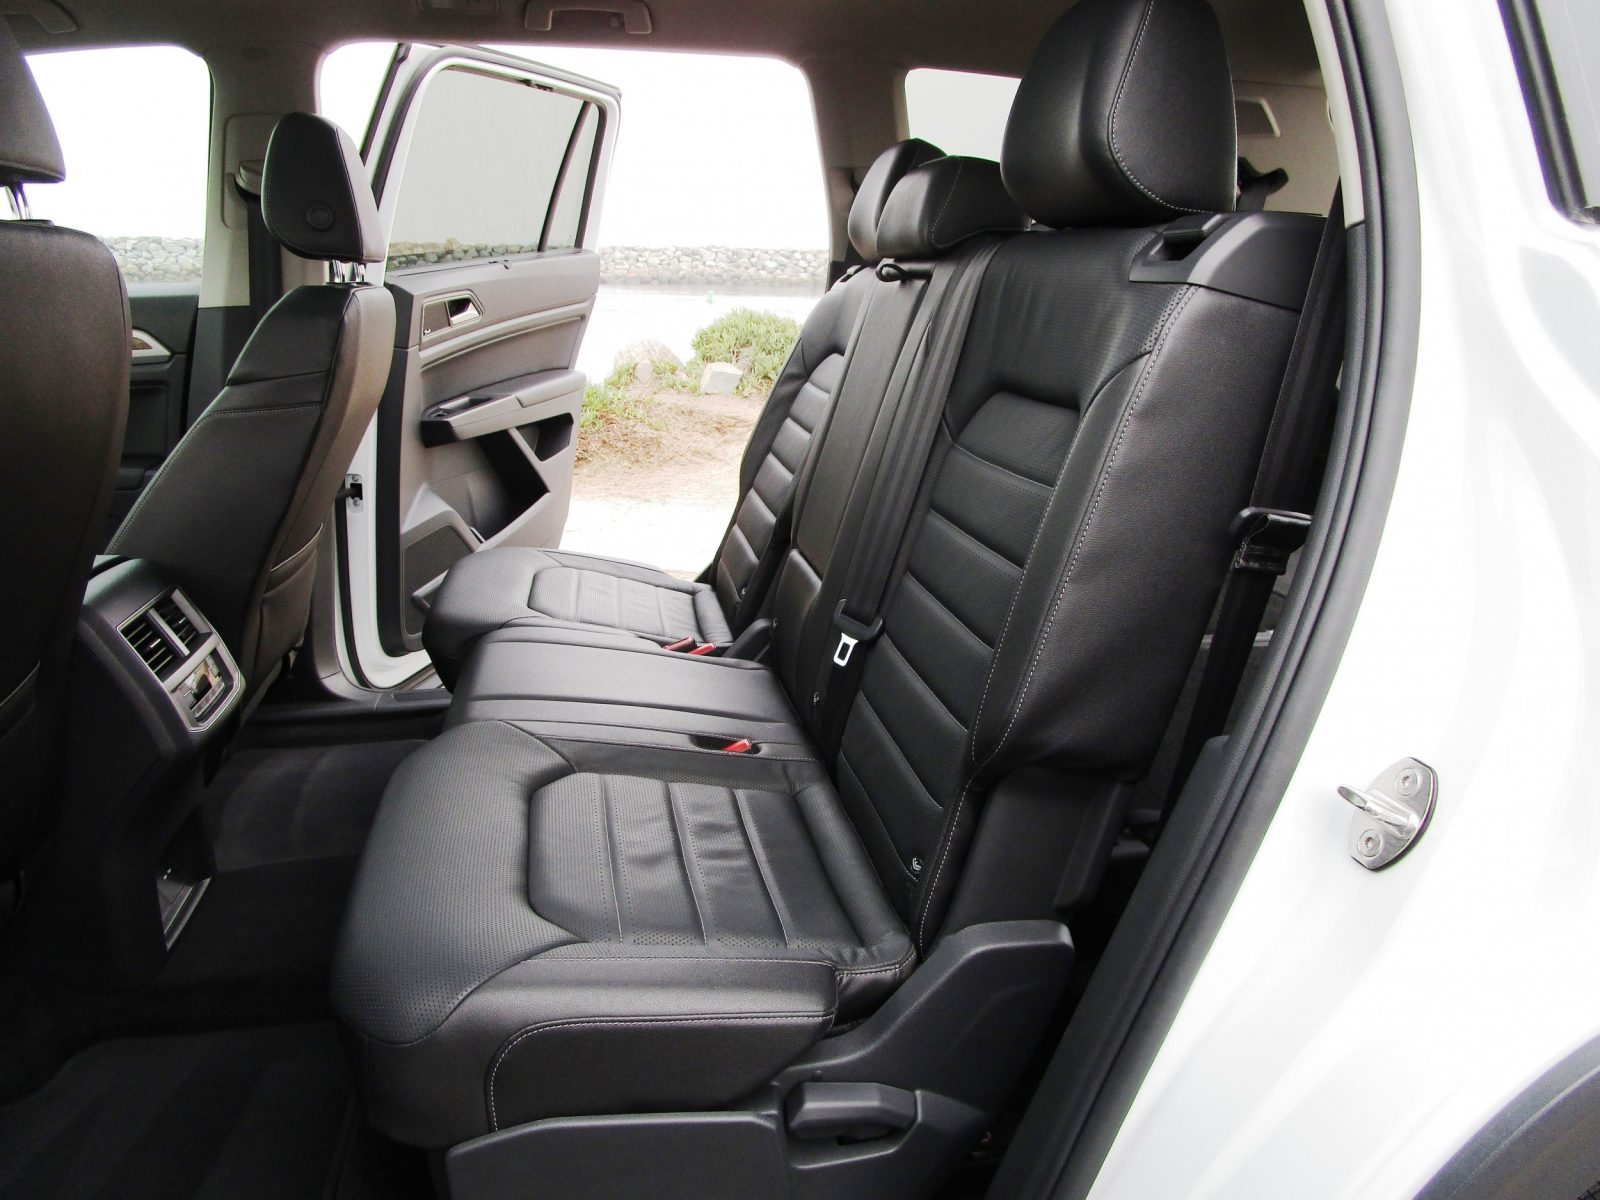 2018 VW Atlas Interior 6